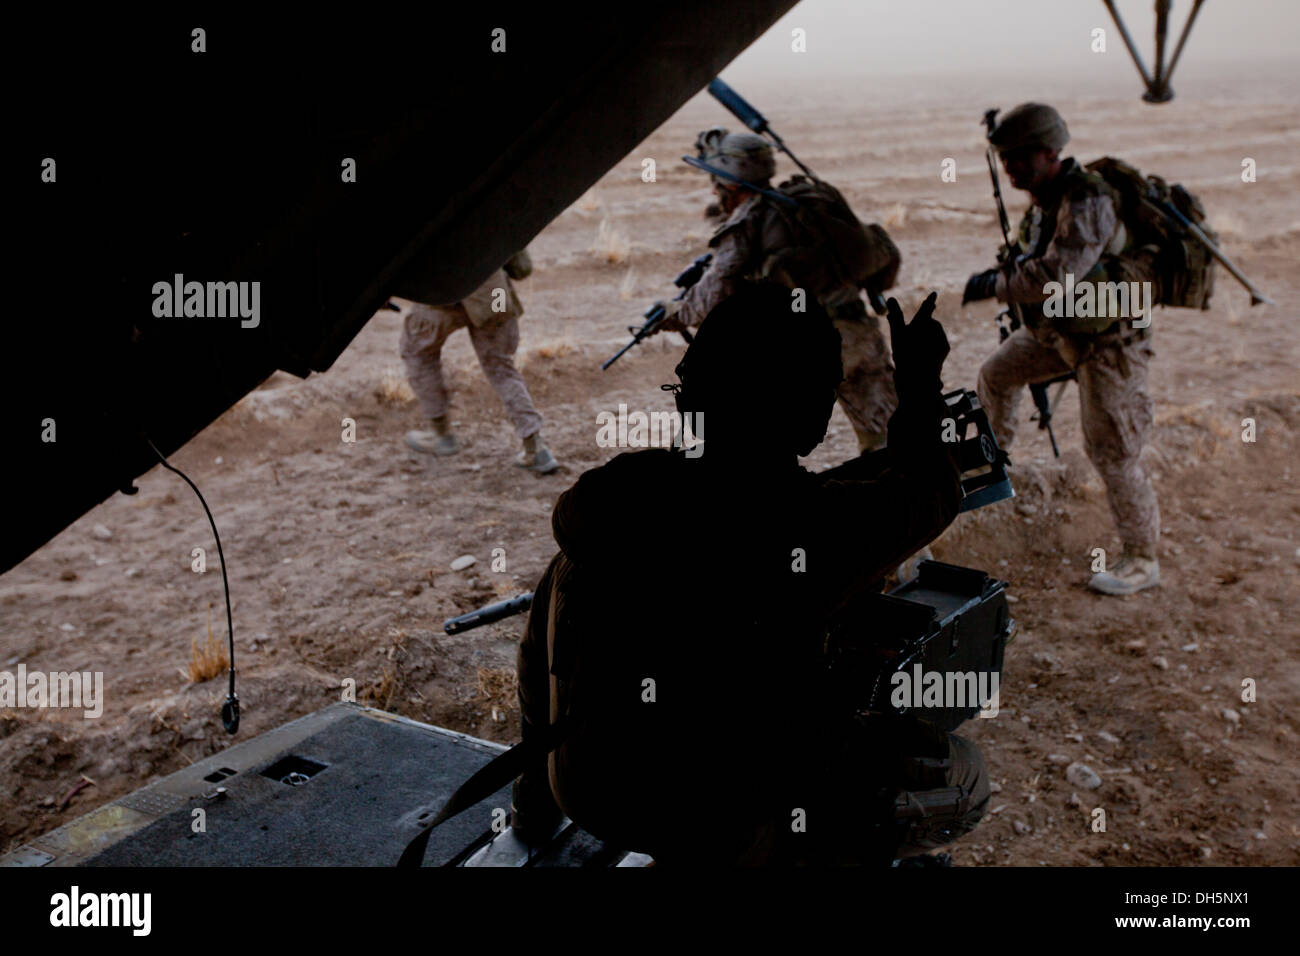 U.S. Marine Corps Cpl. Ryan L. Avery, center, a crew chief with Marine Heavy Helicopter Squadron 462 (HMH-462), Stock Photo